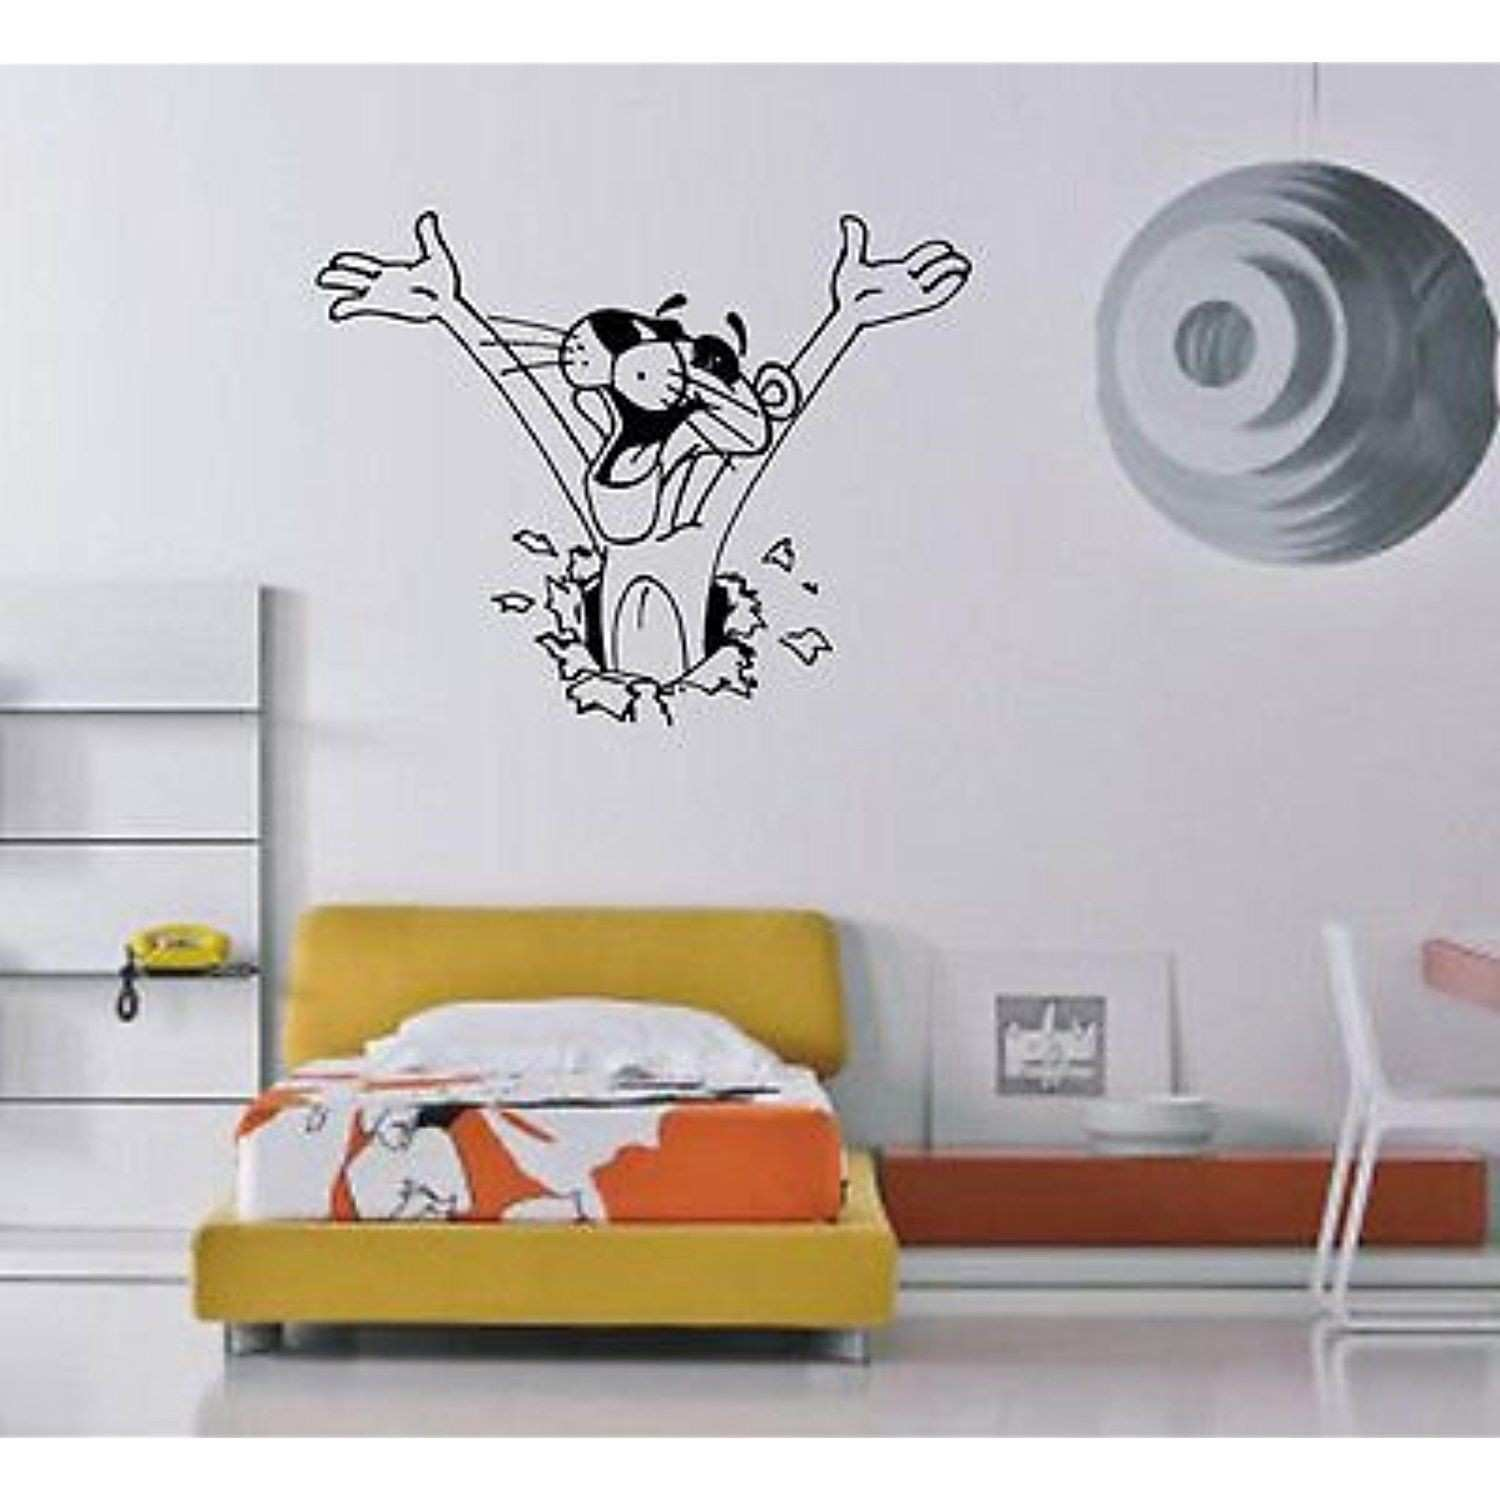 Funny Pink Panther Cartoon Kids Room Decor Wall Mural Vinyl Art